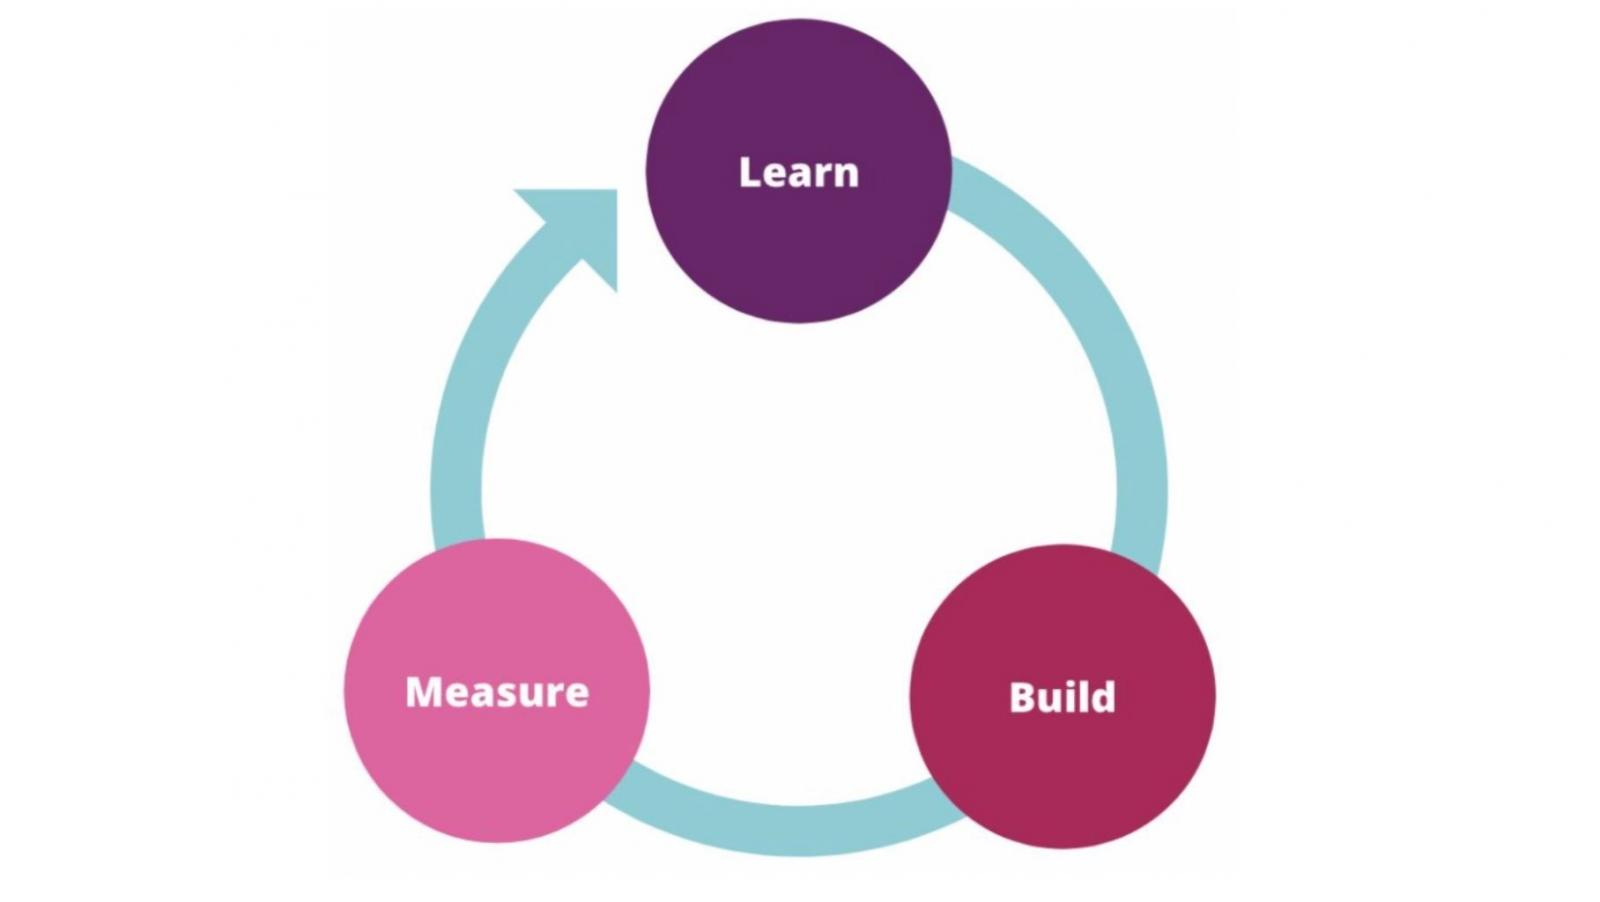 Modified Lean Startup circle diagram to show the Learn - Build - Measure process